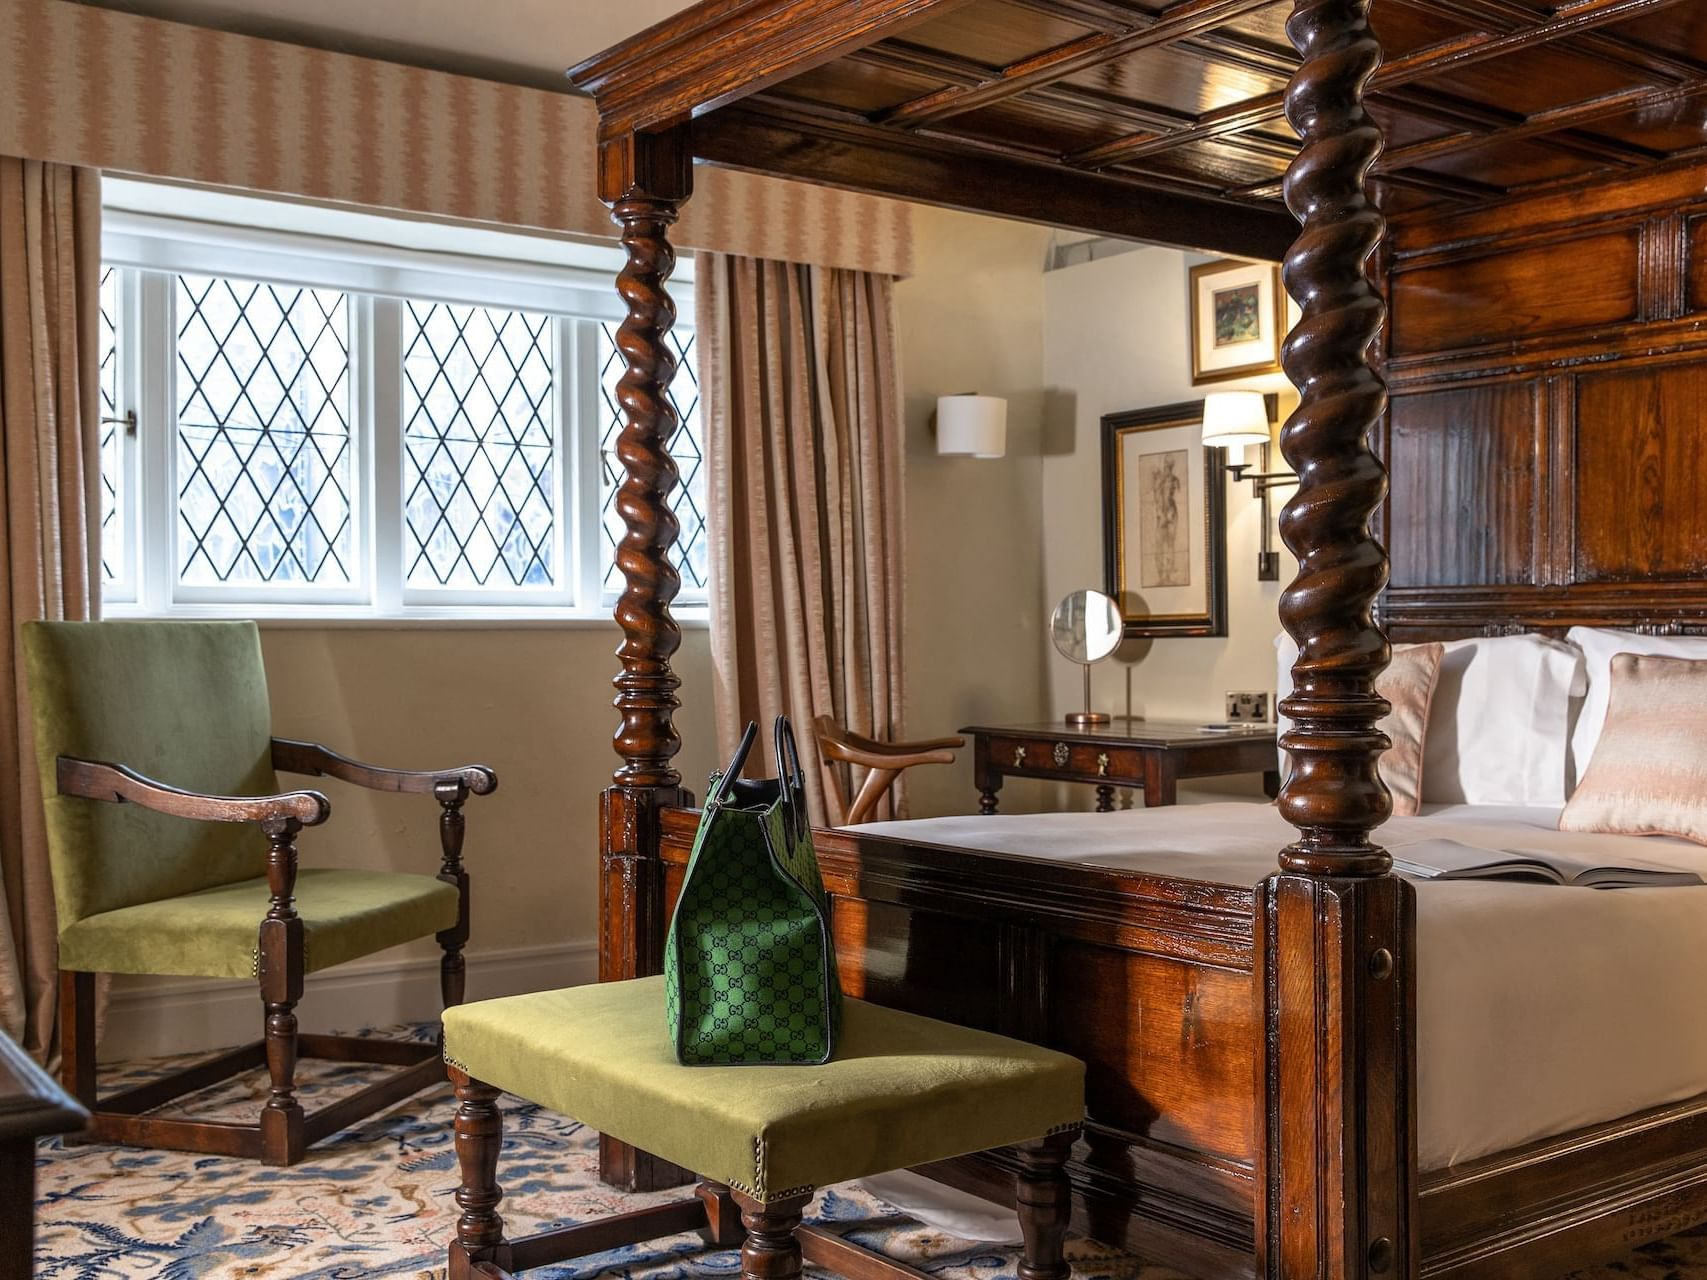 Interior of Heritage Four Poster Room at The Relais Henley